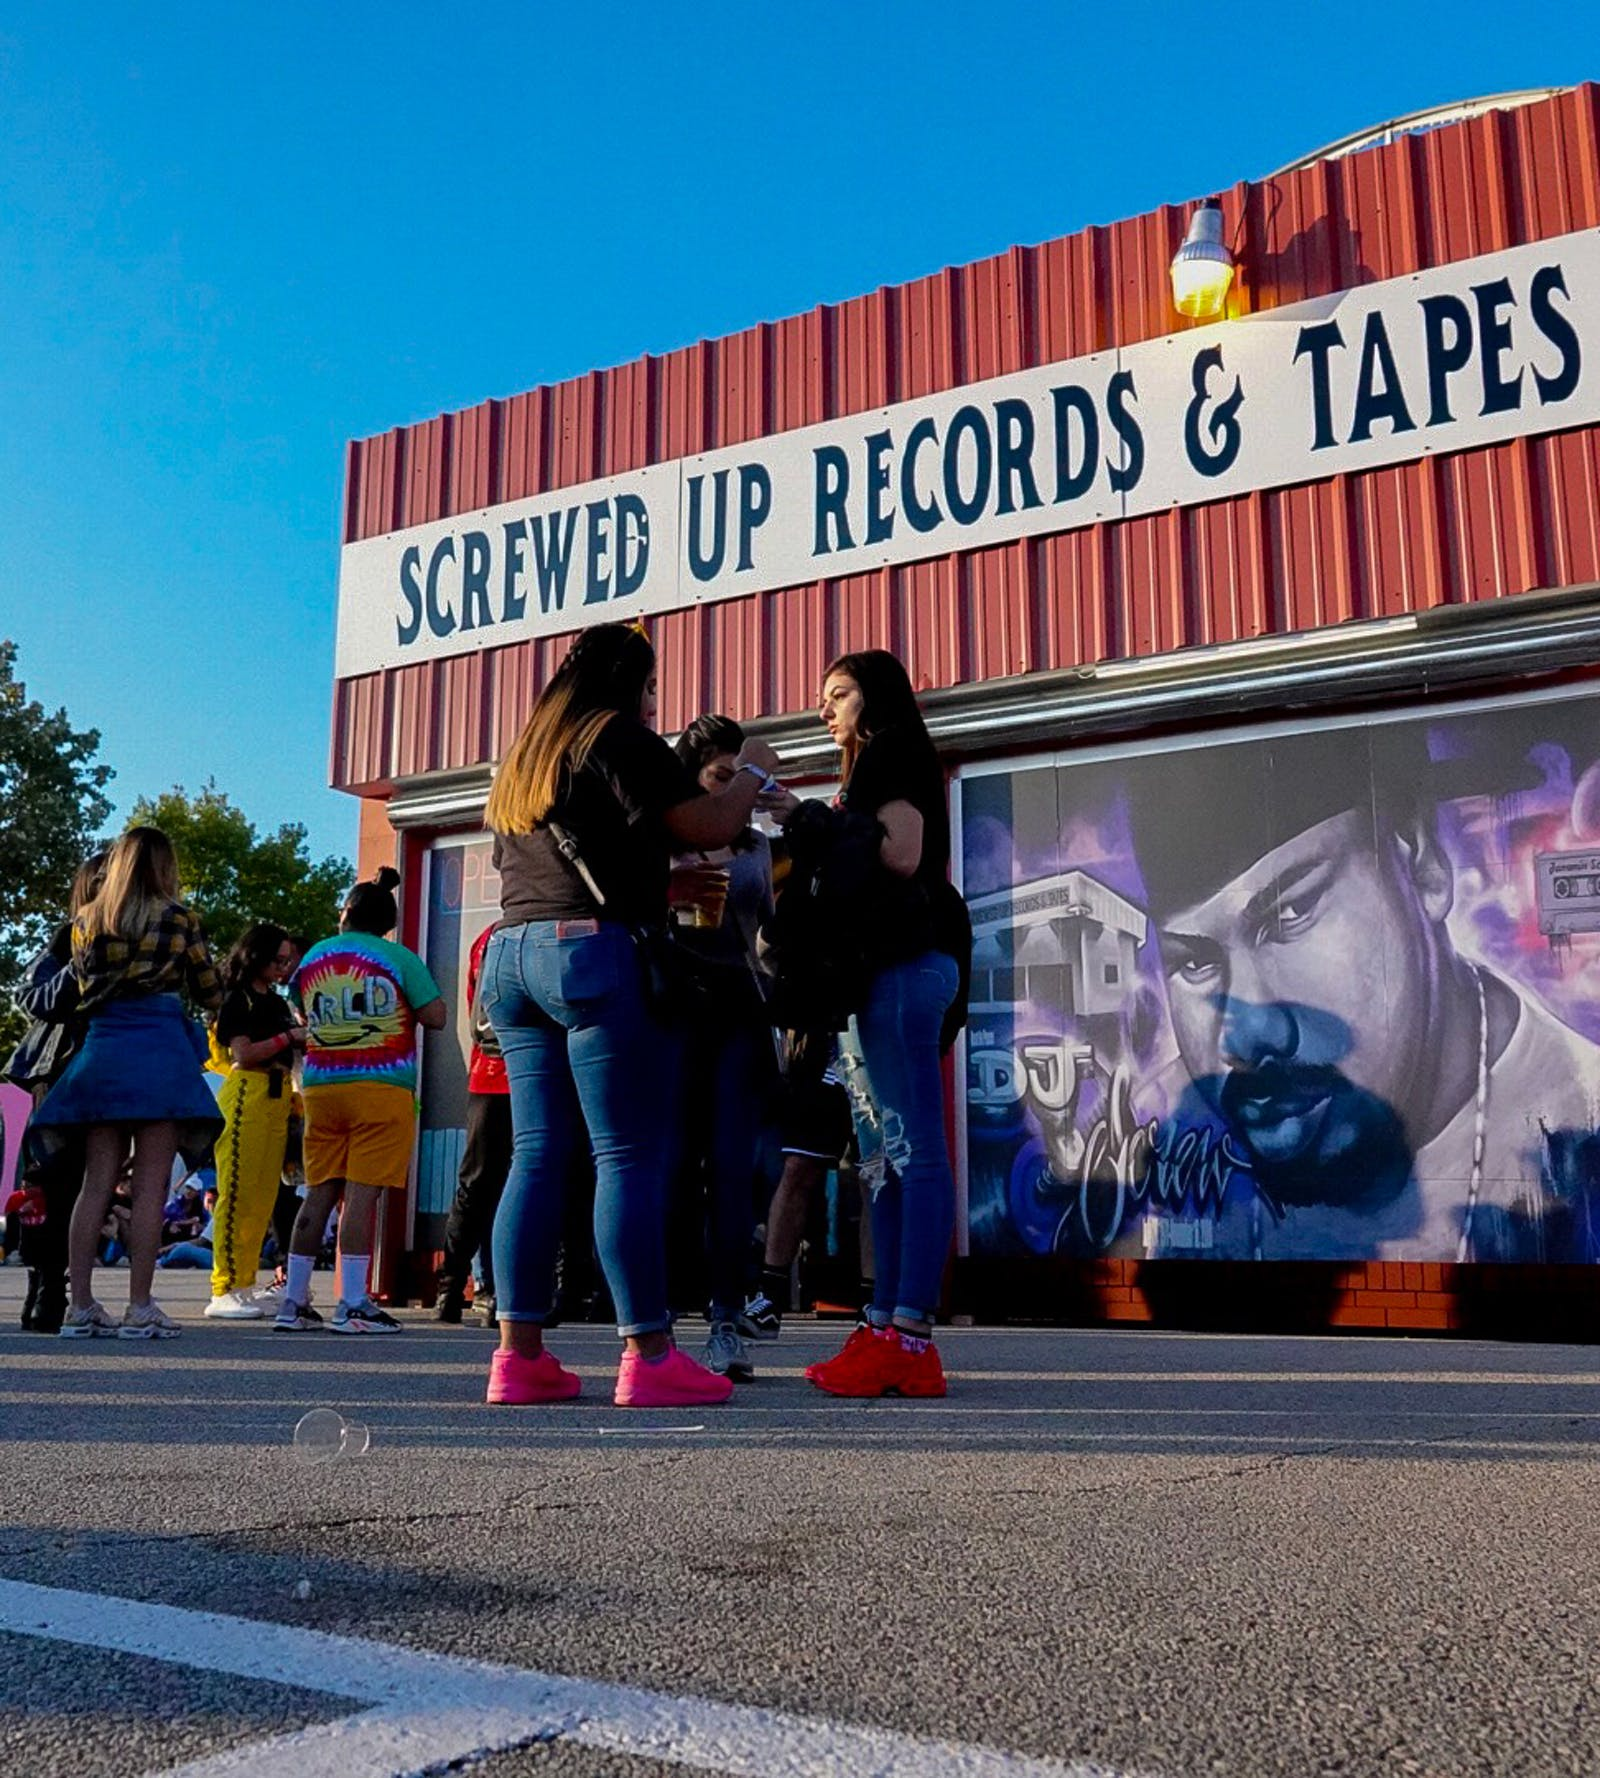 A Screwed Up Records & Tapes storefront at Astroworld